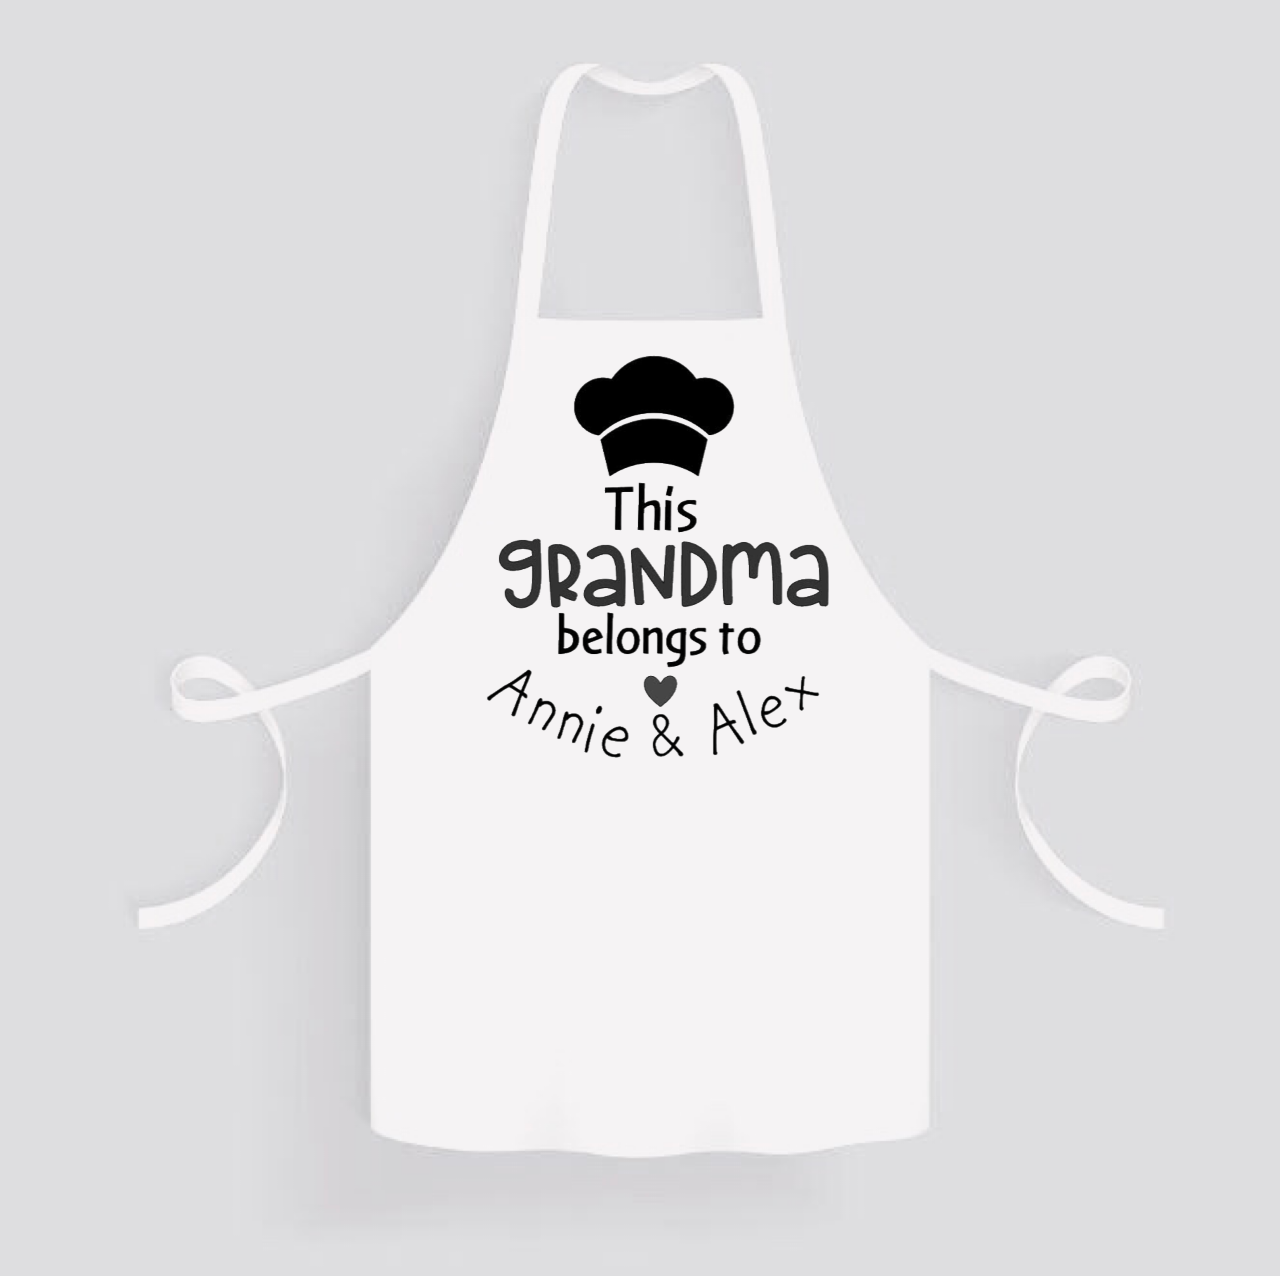 Apron: This Grandma belongs to * Personalized